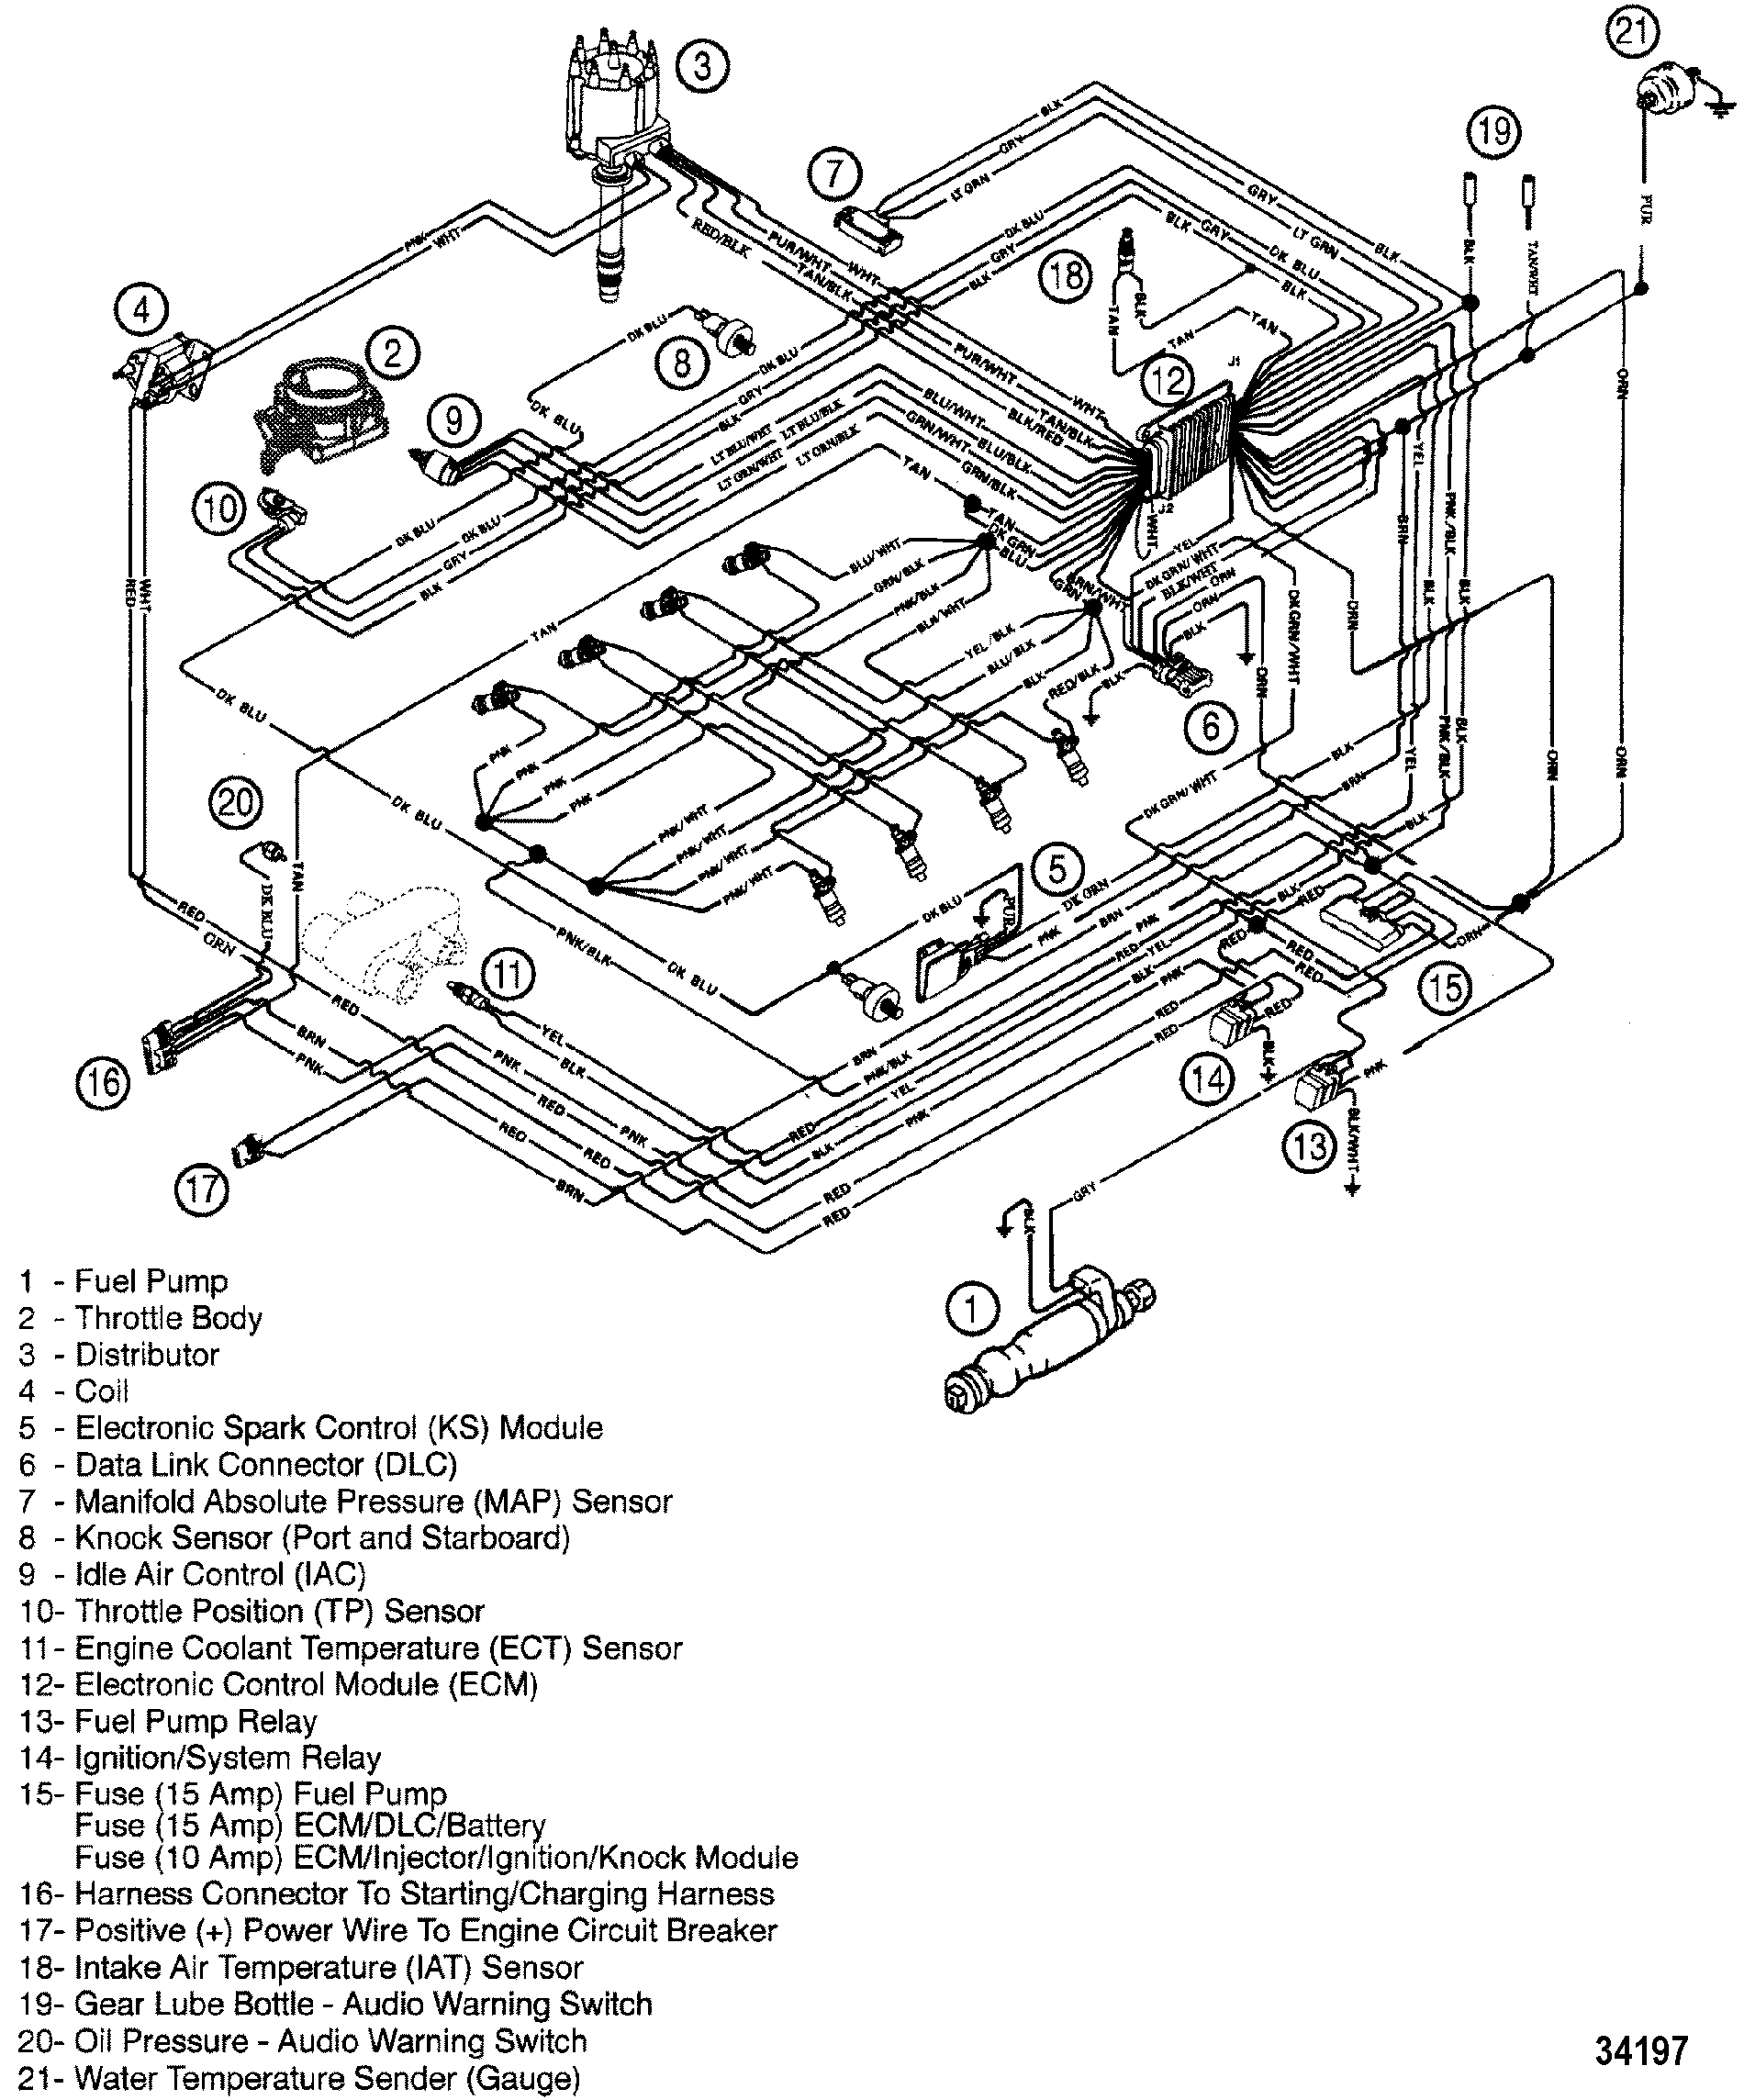 34197 cp performance wiring harness (efi) mercruiser wiring schematic at bayanpartner.co